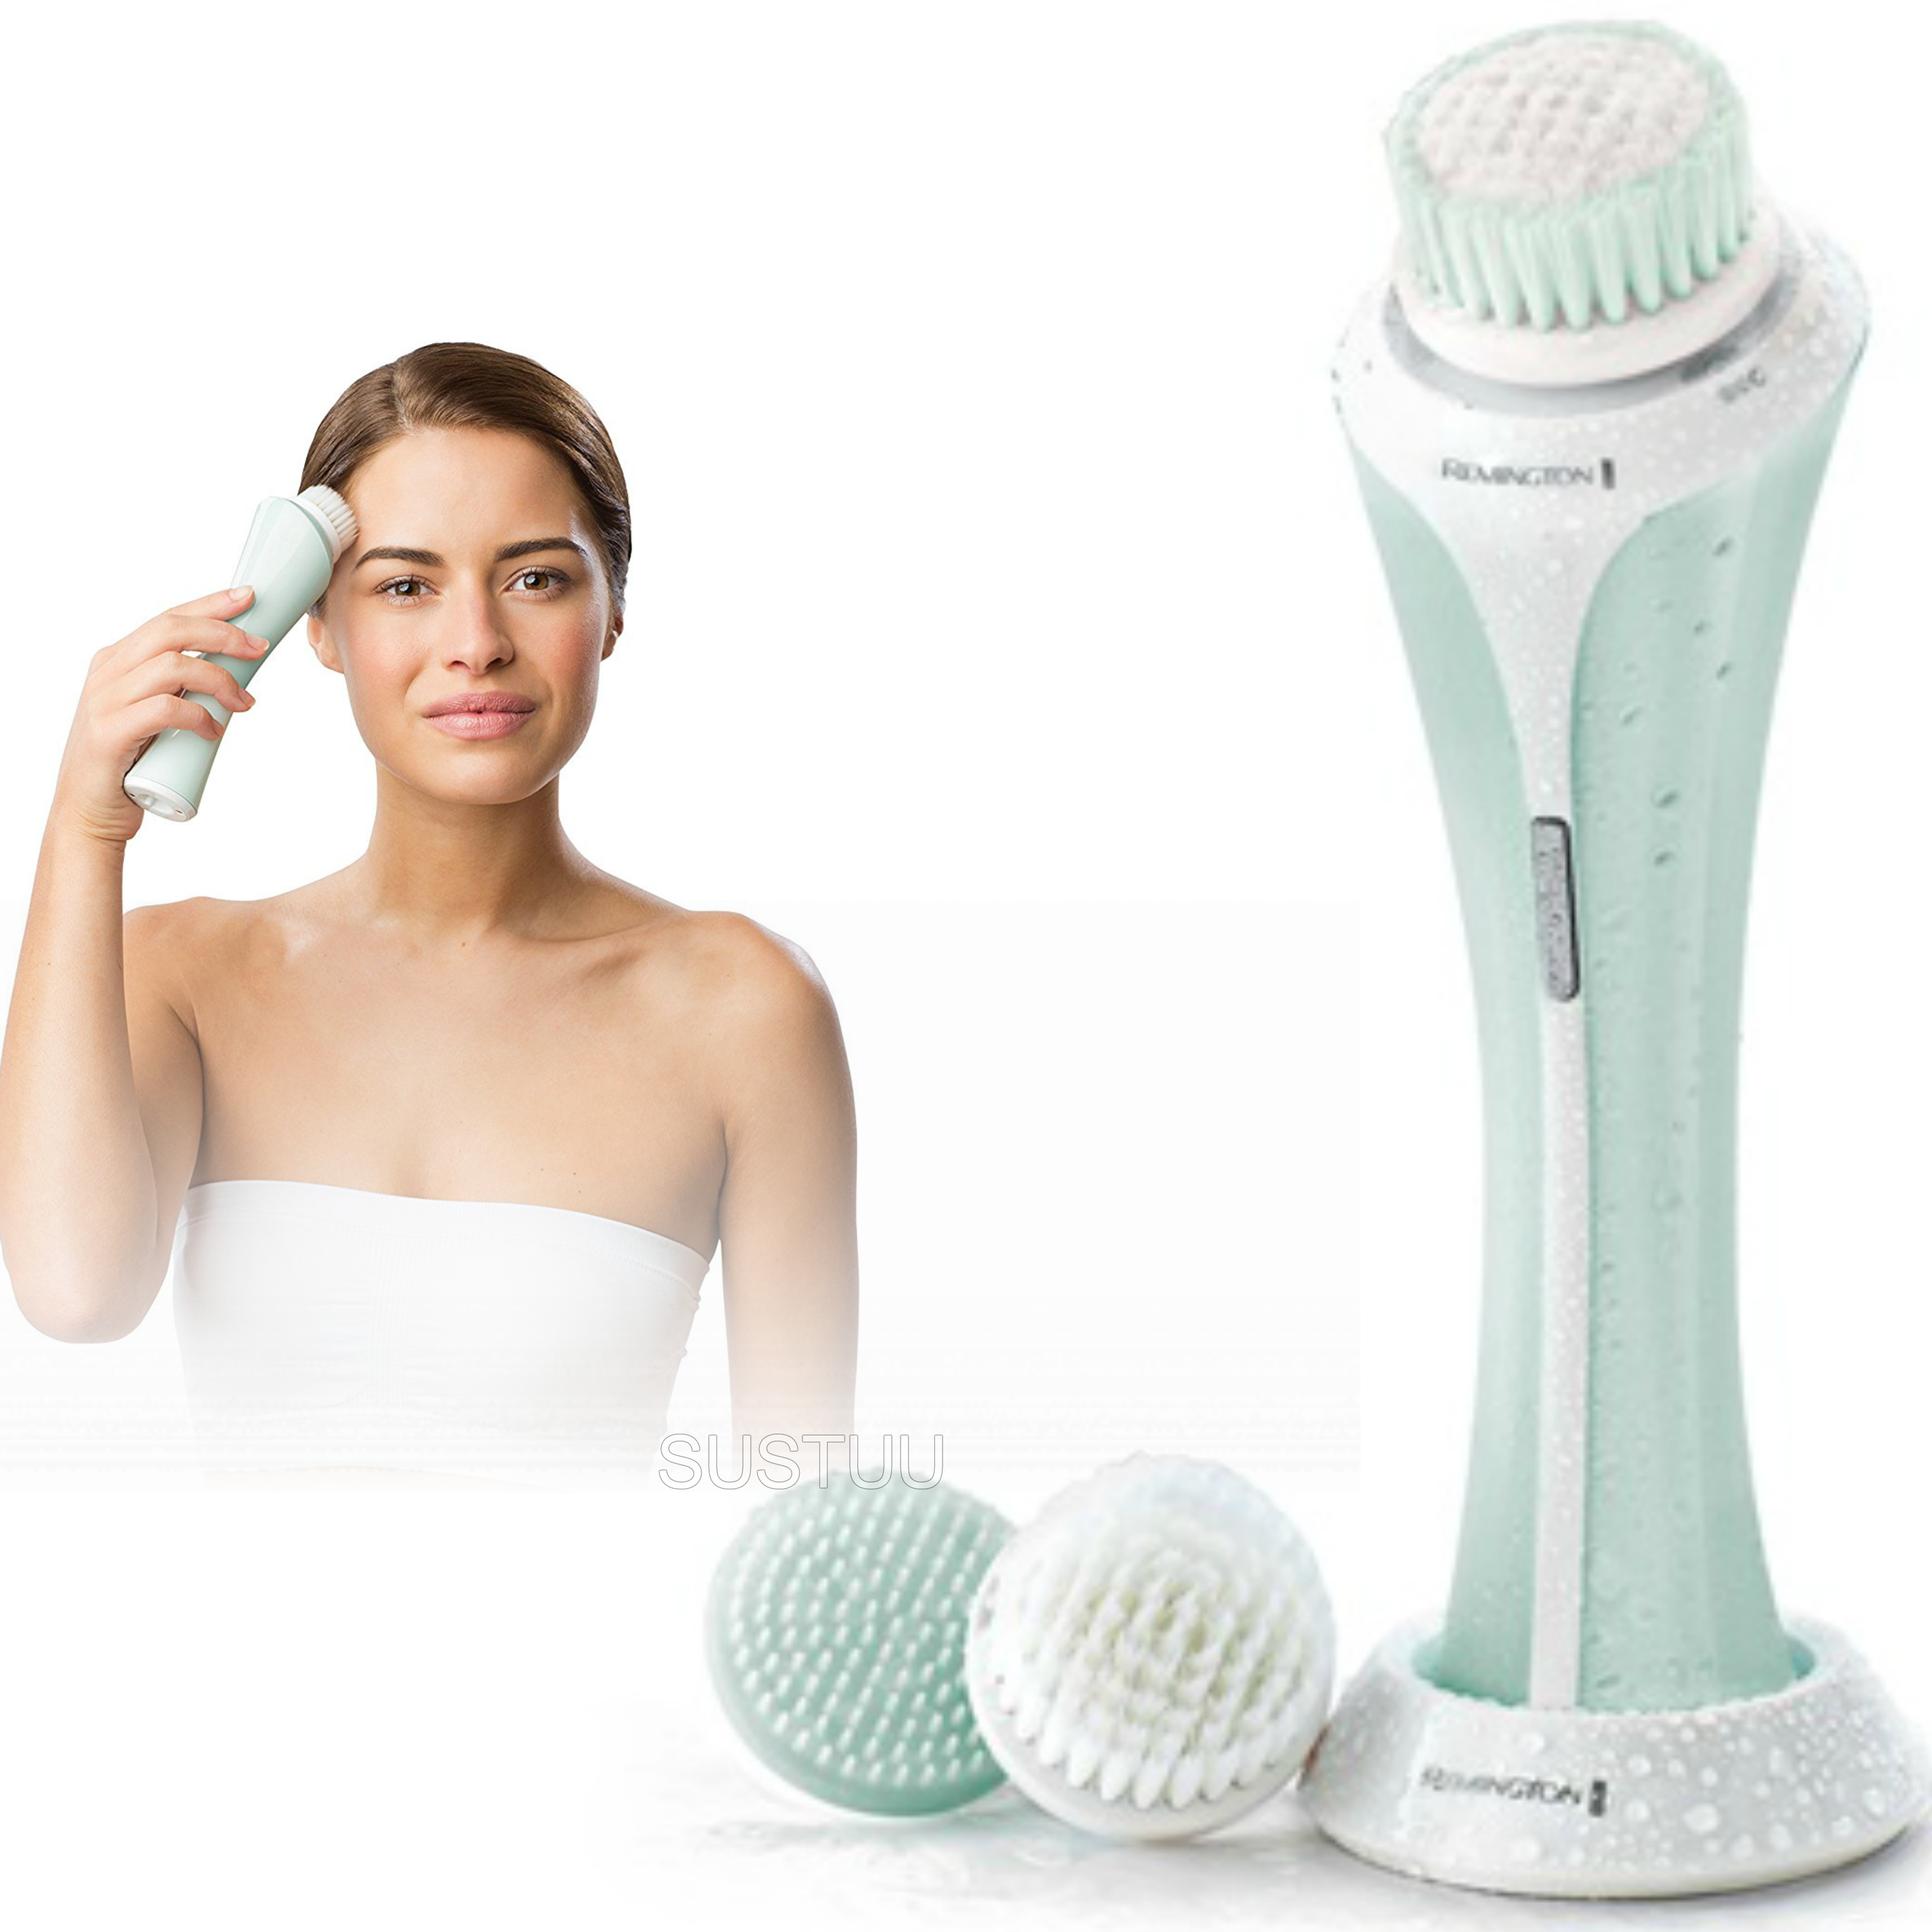 Remington Reveal Facial Cleansing Exfoliating Brush/Comb | 3x Brush Heads | Washable